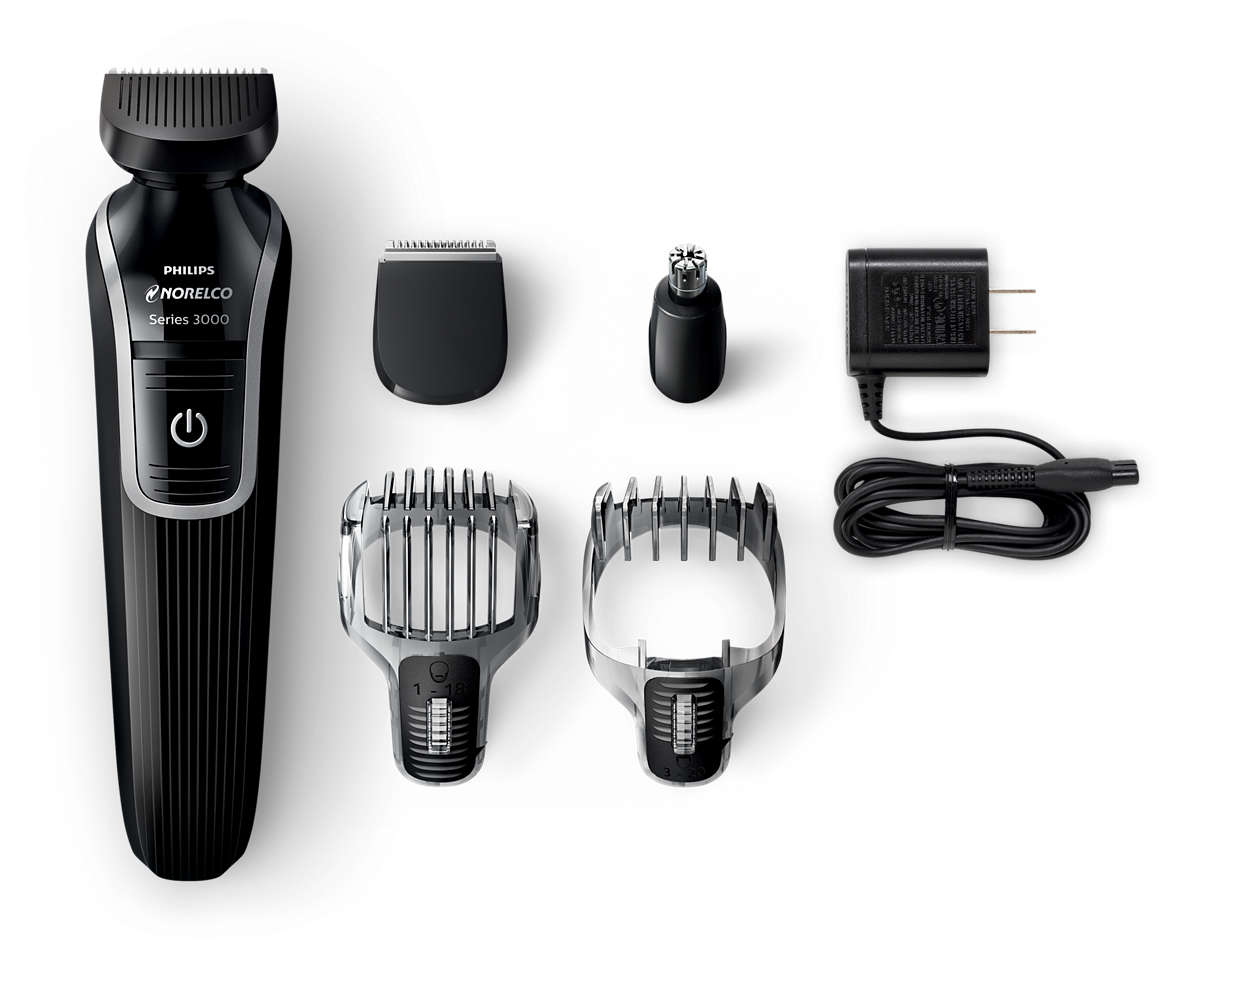 multigroom 3100 all in one 5 in 1 grooming kit qg3330 49 norelco. Black Bedroom Furniture Sets. Home Design Ideas